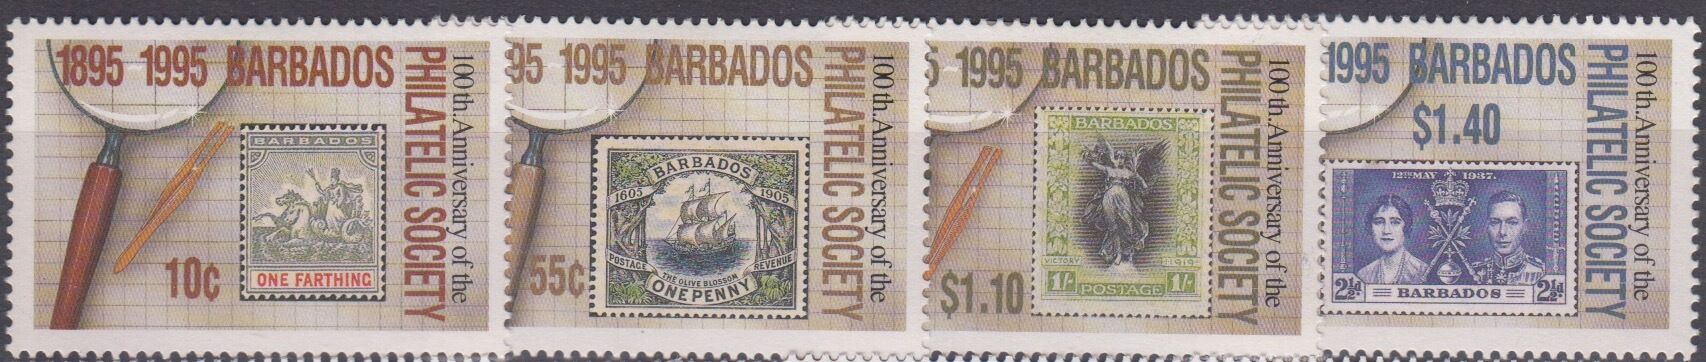 How many stamp collectors are there left in Barbados?